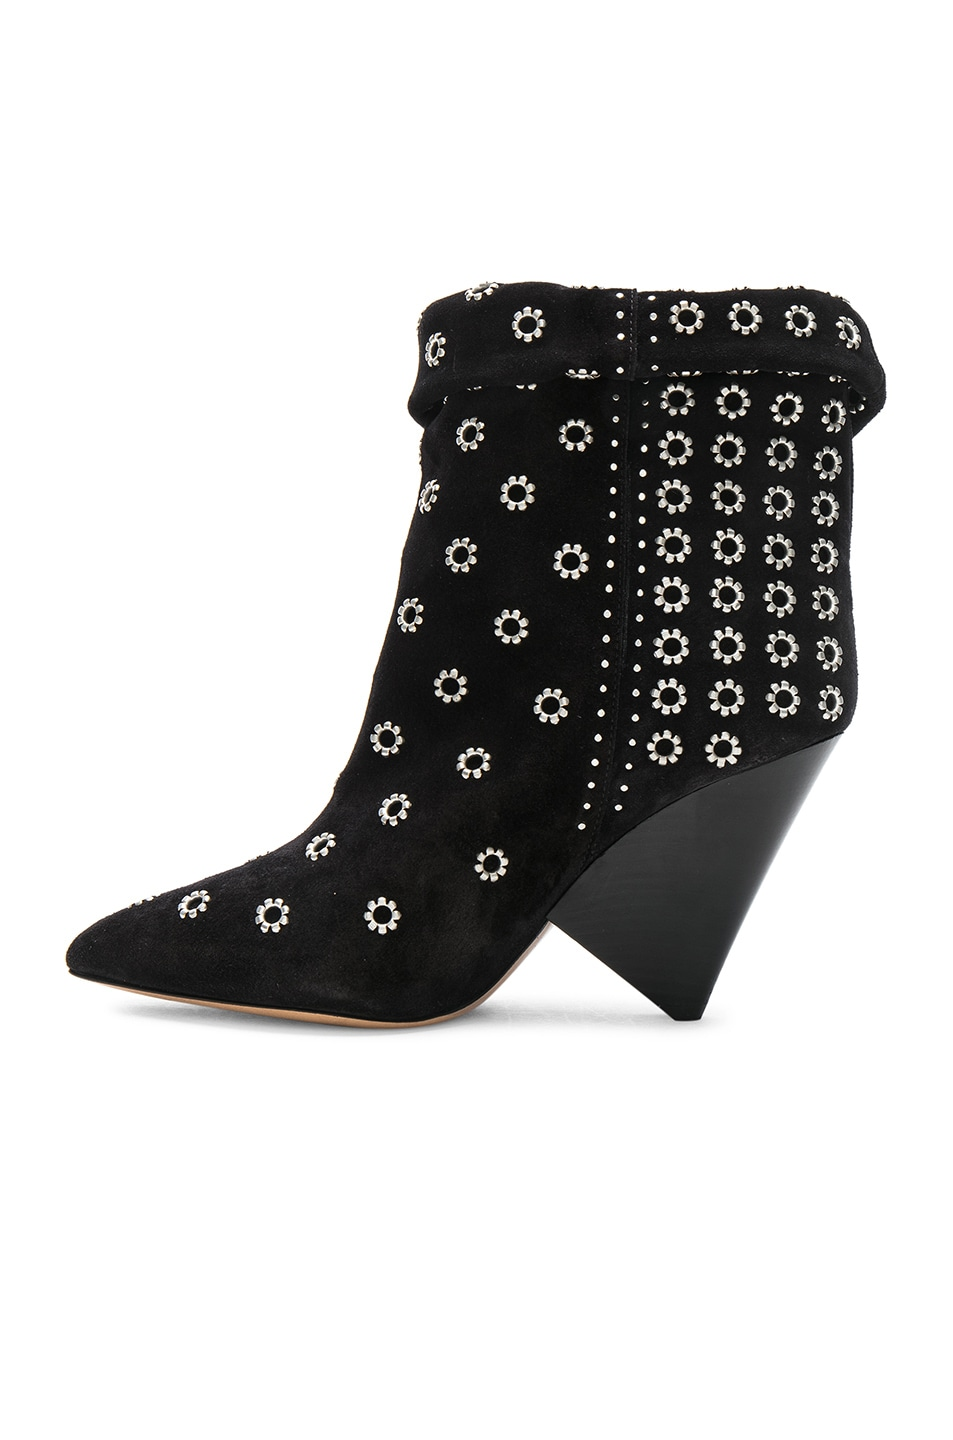 Isabel Marant Studded Suede Lakky Ankle Boots in . T5Tbl